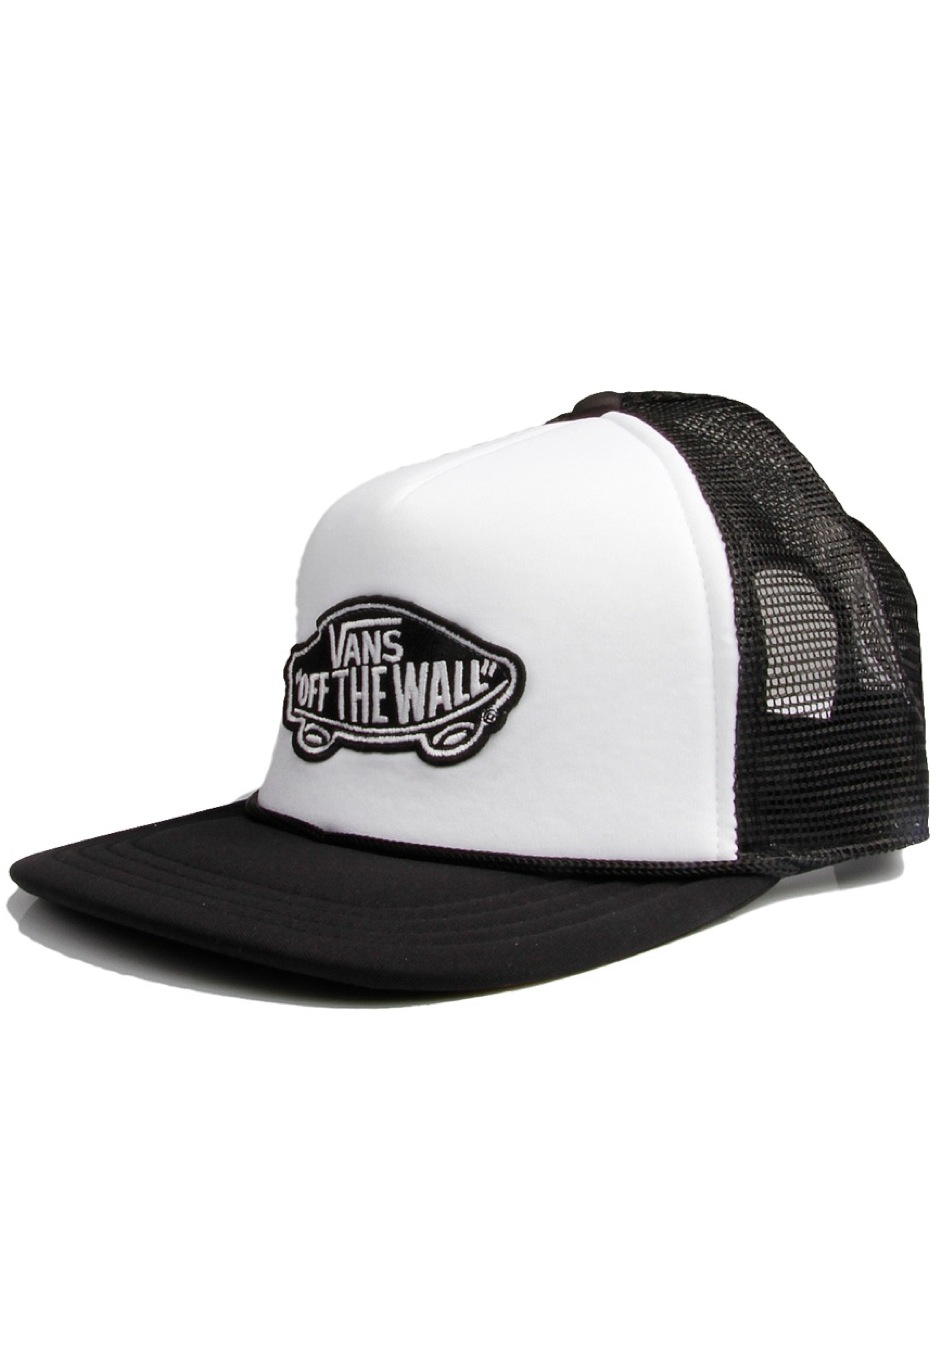 e46a11ad Vans - Classic Patch Trucker White/Black - Cap - Impericon.com US